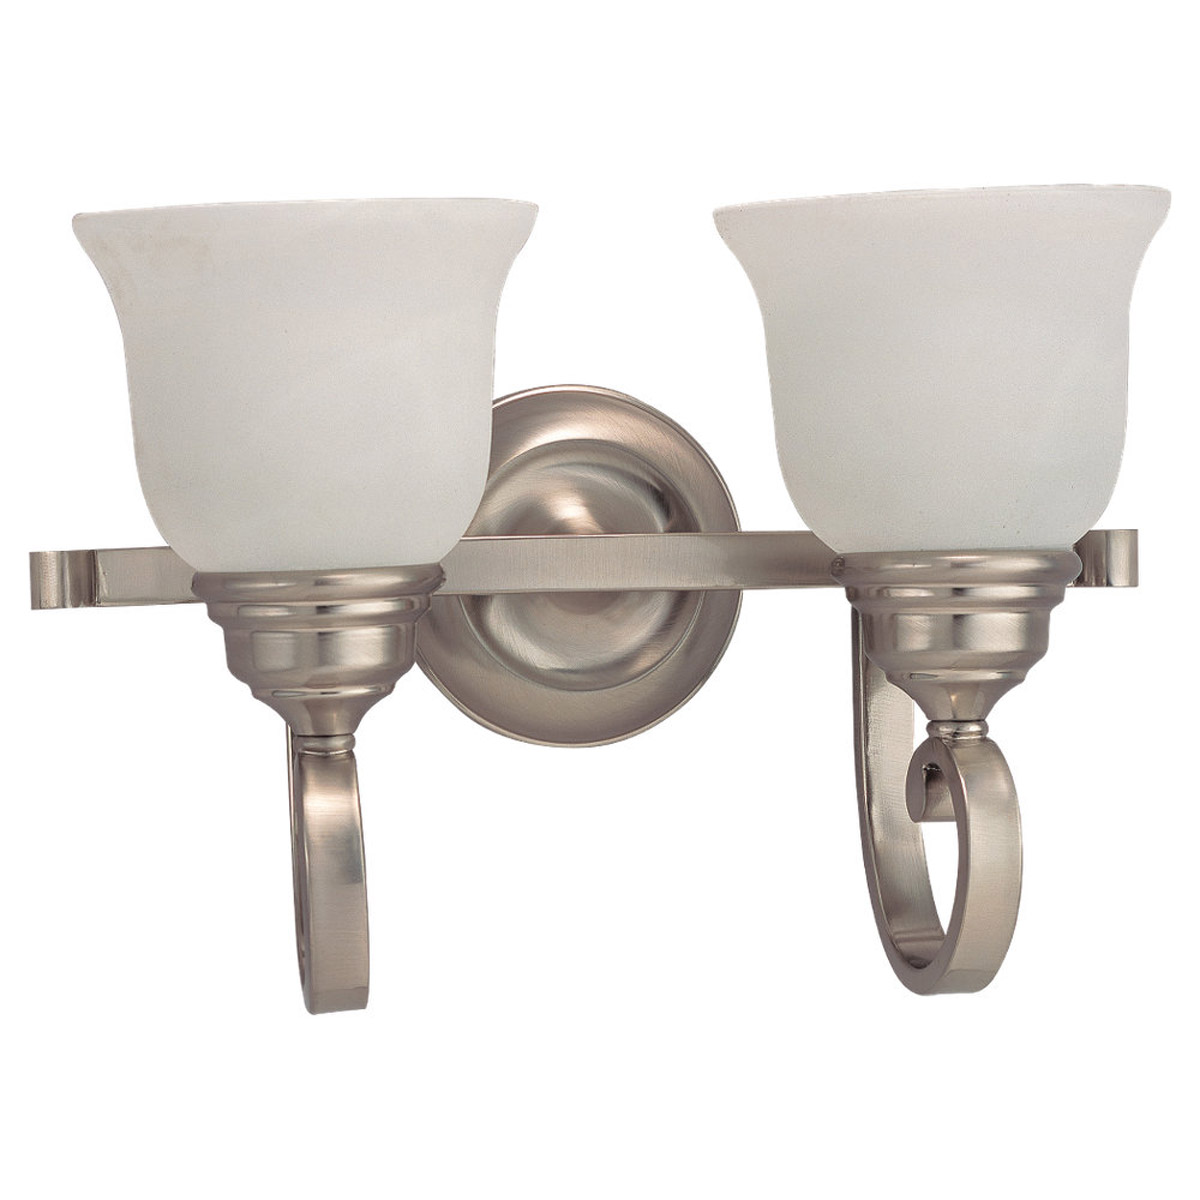 Sea Gull Lighting Serenity 2 Light Bath Vanity in Brushed Nickel 44190-962 photo